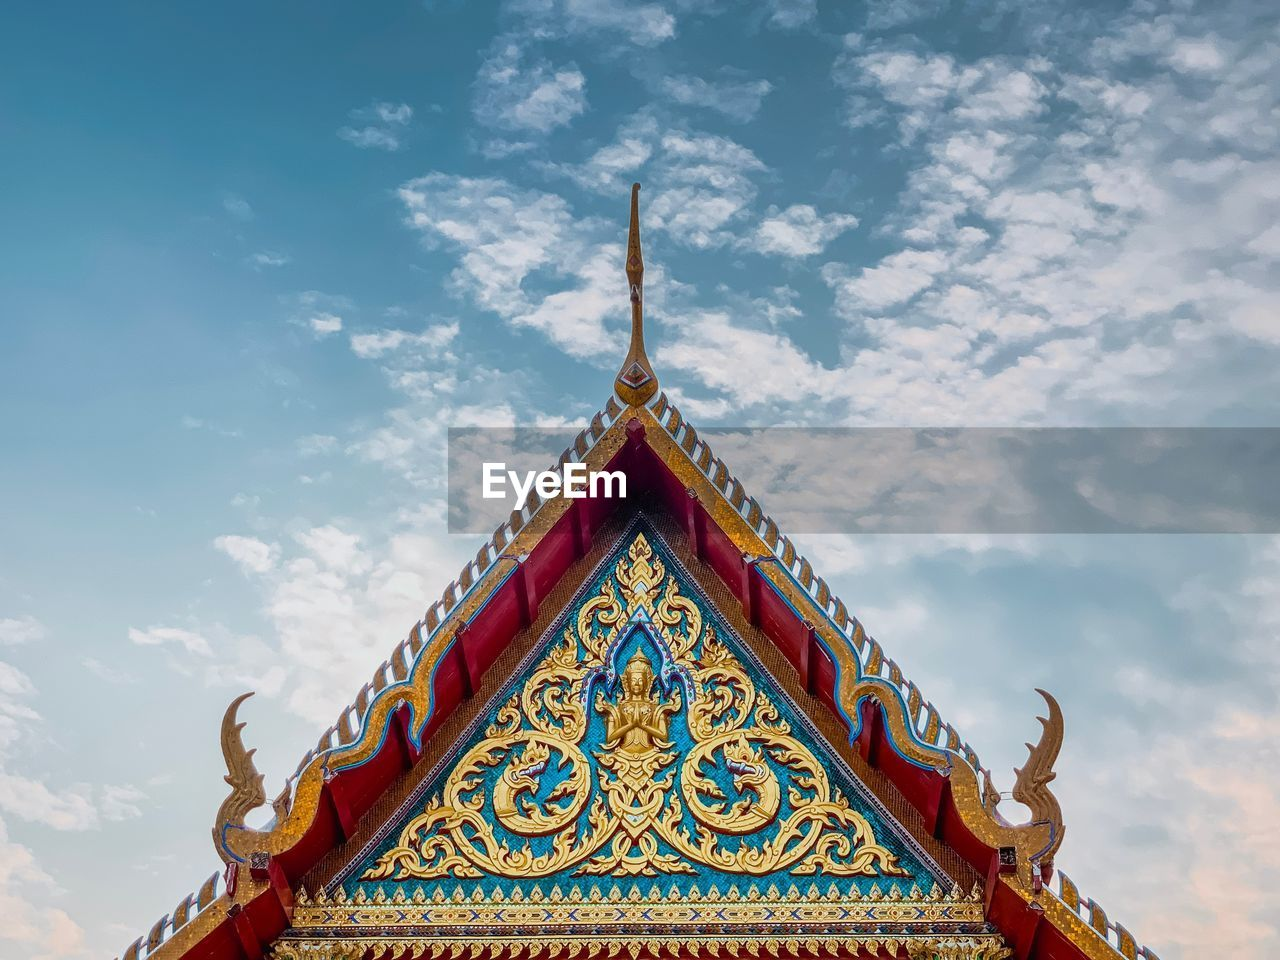 cloud - sky, sky, built structure, architecture, low angle view, no people, religion, belief, pattern, day, building, spirituality, building exterior, place of worship, design, nature, art and craft, high section, outdoors, ornate